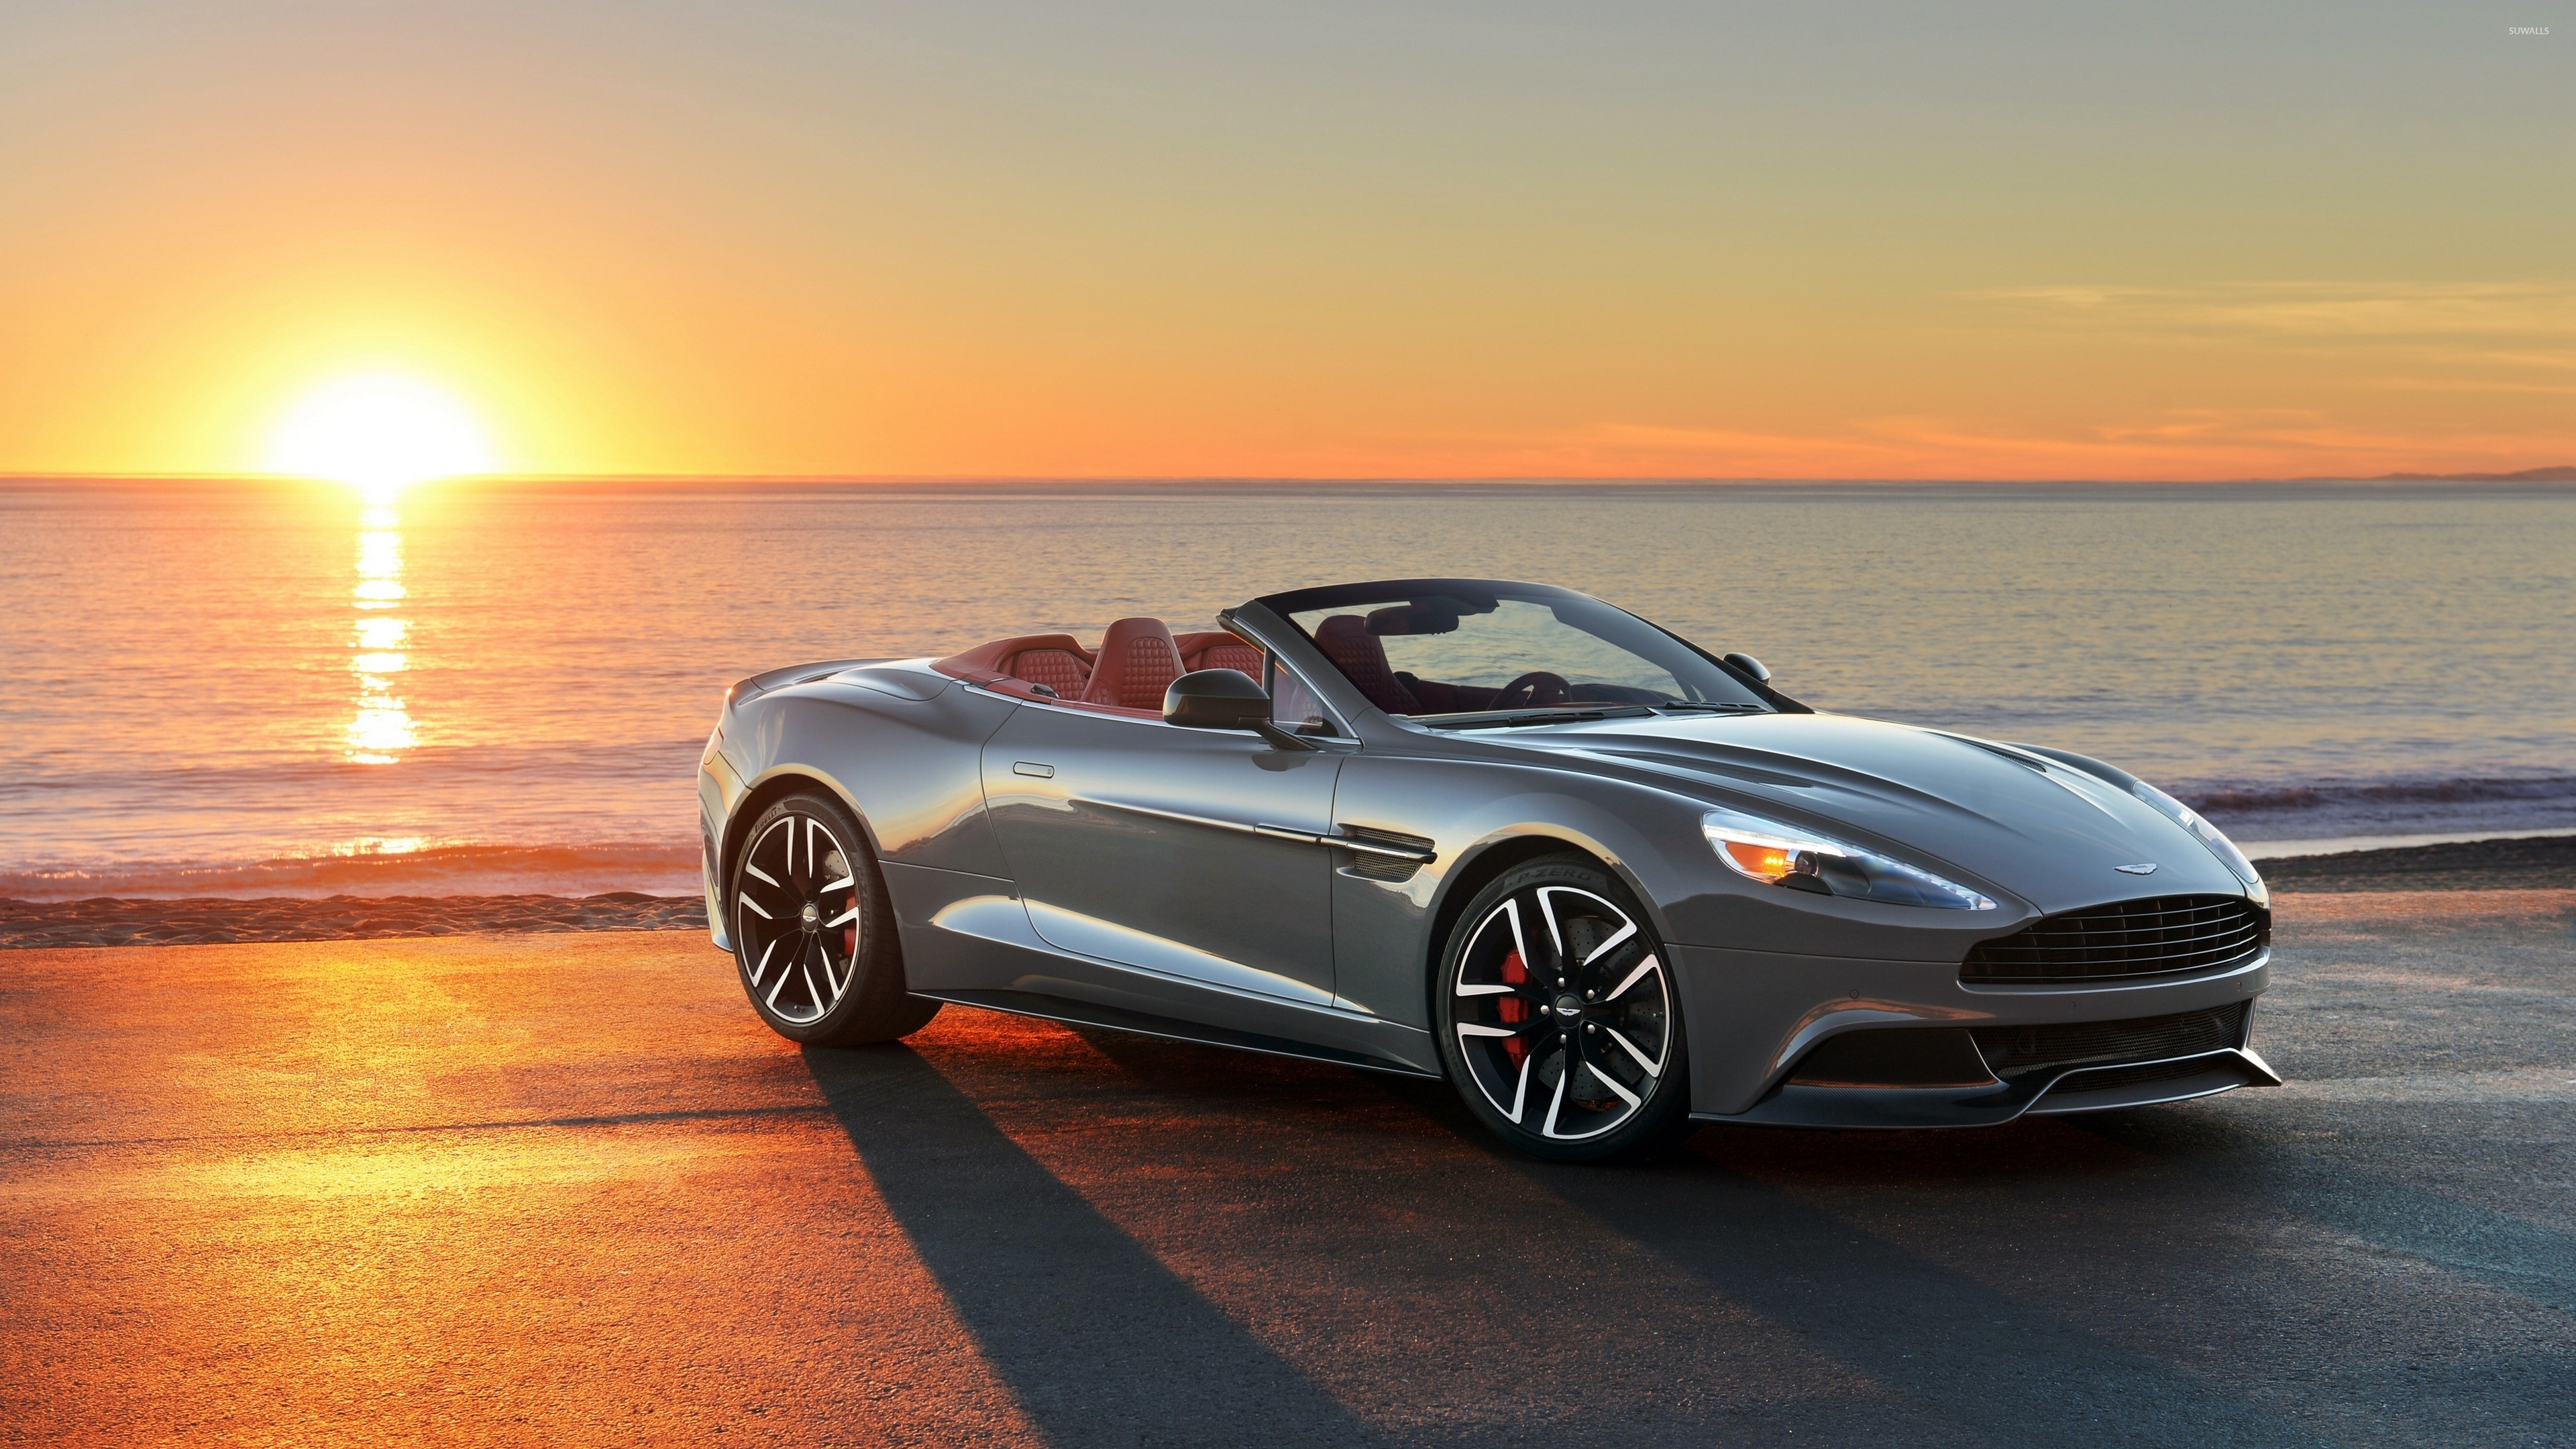 Aston Martin Vanquish [3] wallpaper   Car wallpapers   46932 3840x2160